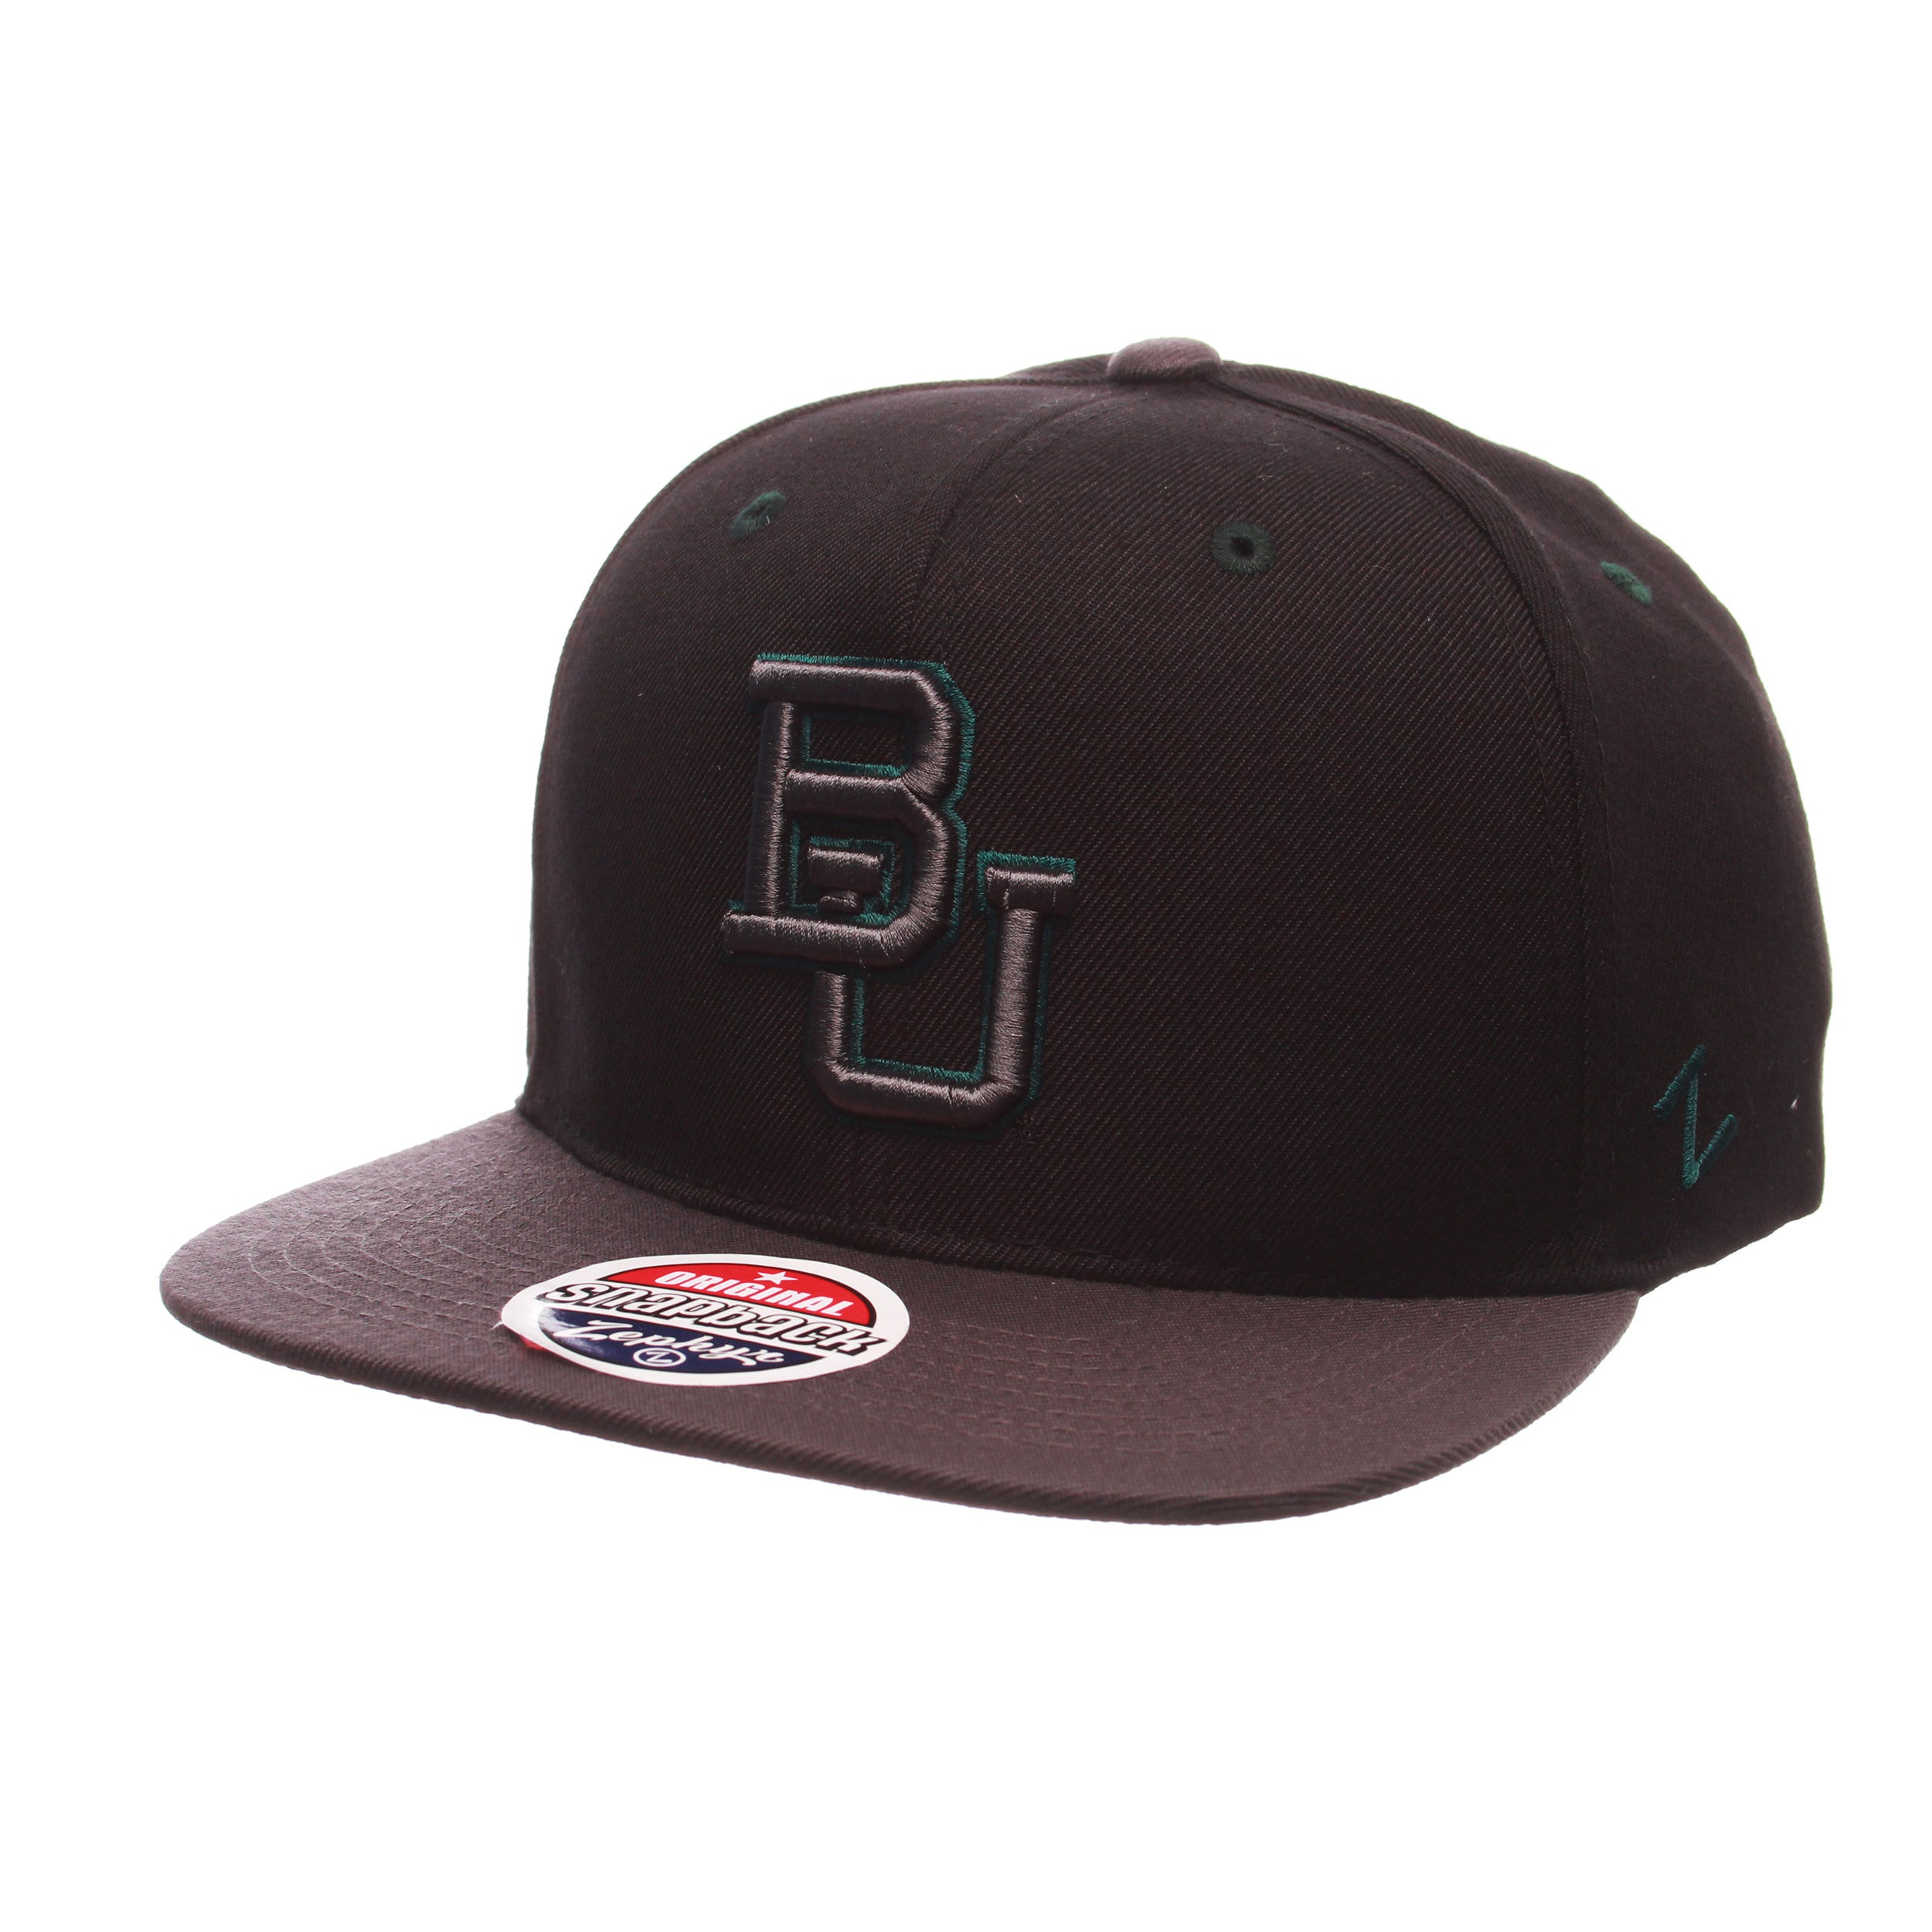 Baylor University Z11 Blackout 32/5 (High) (BU) Black Zwool Adjustable hats by Zephyr